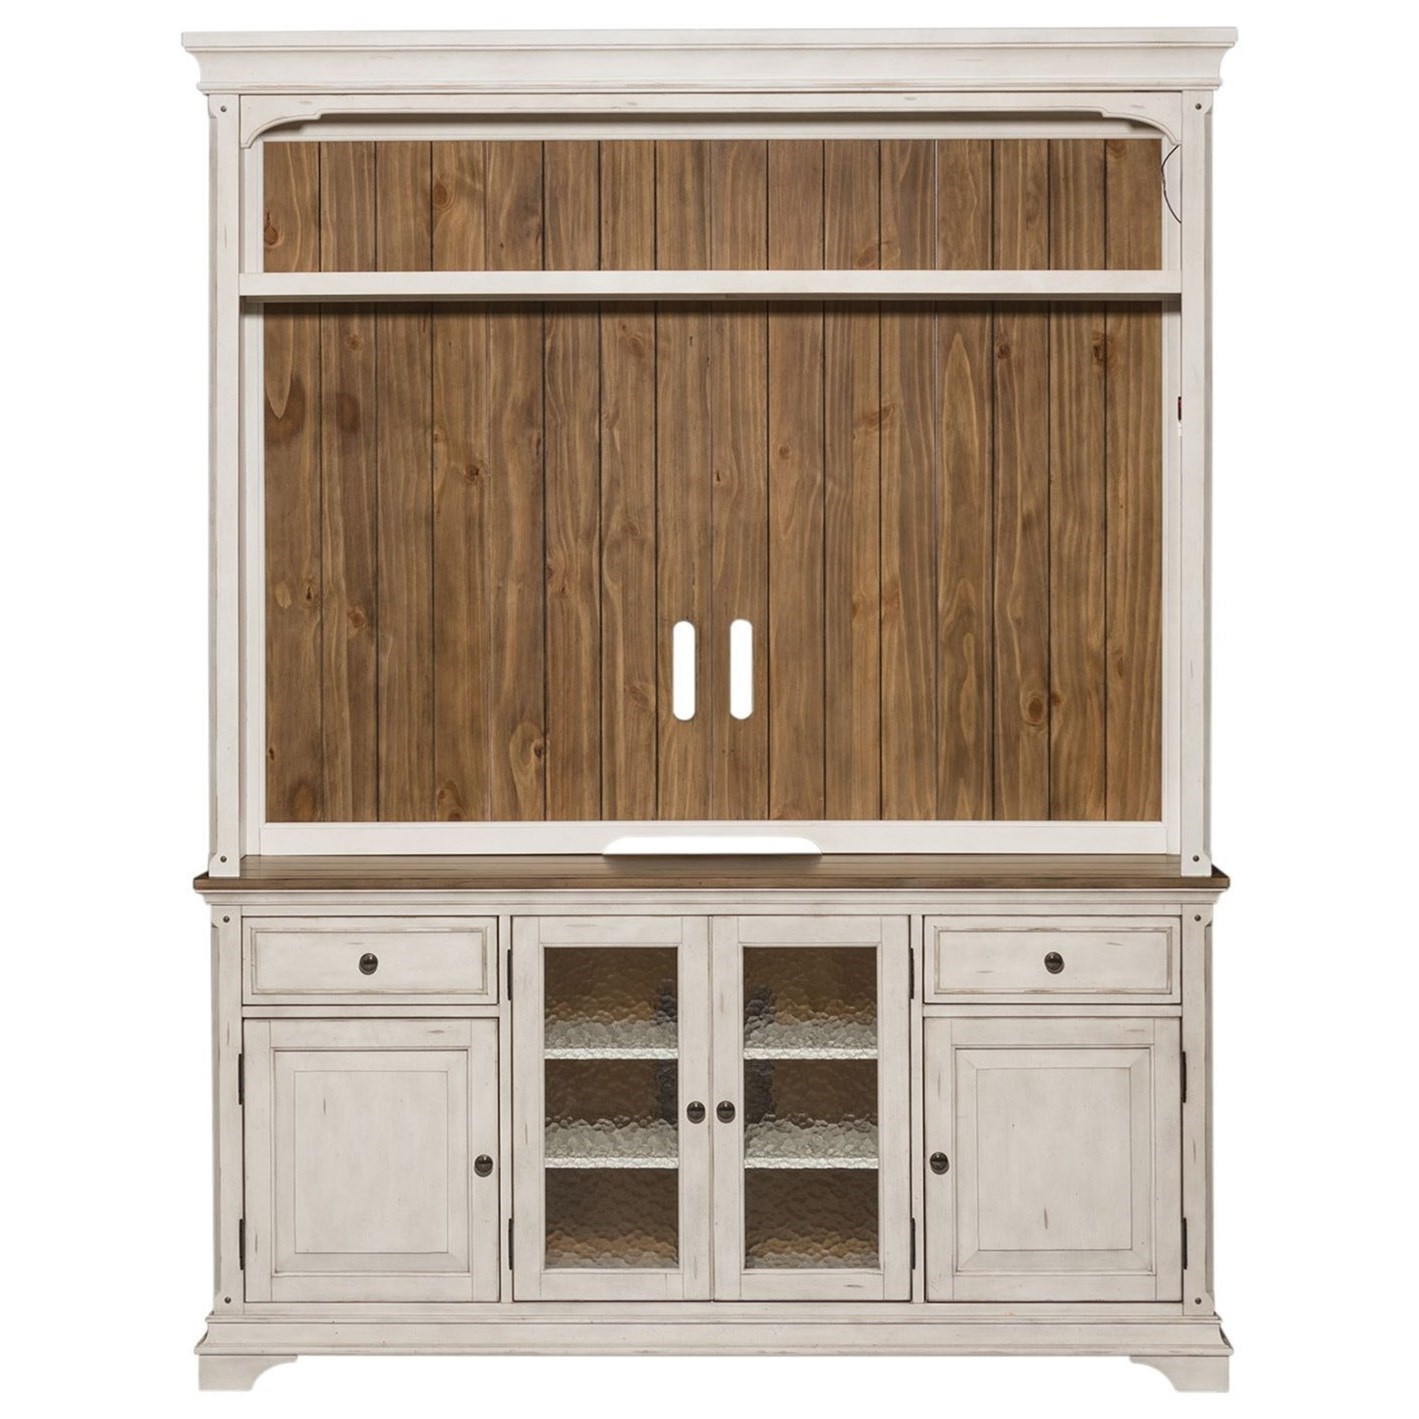 Relaxed Vintage Entertainment Center with Adjustable Wood Shelves